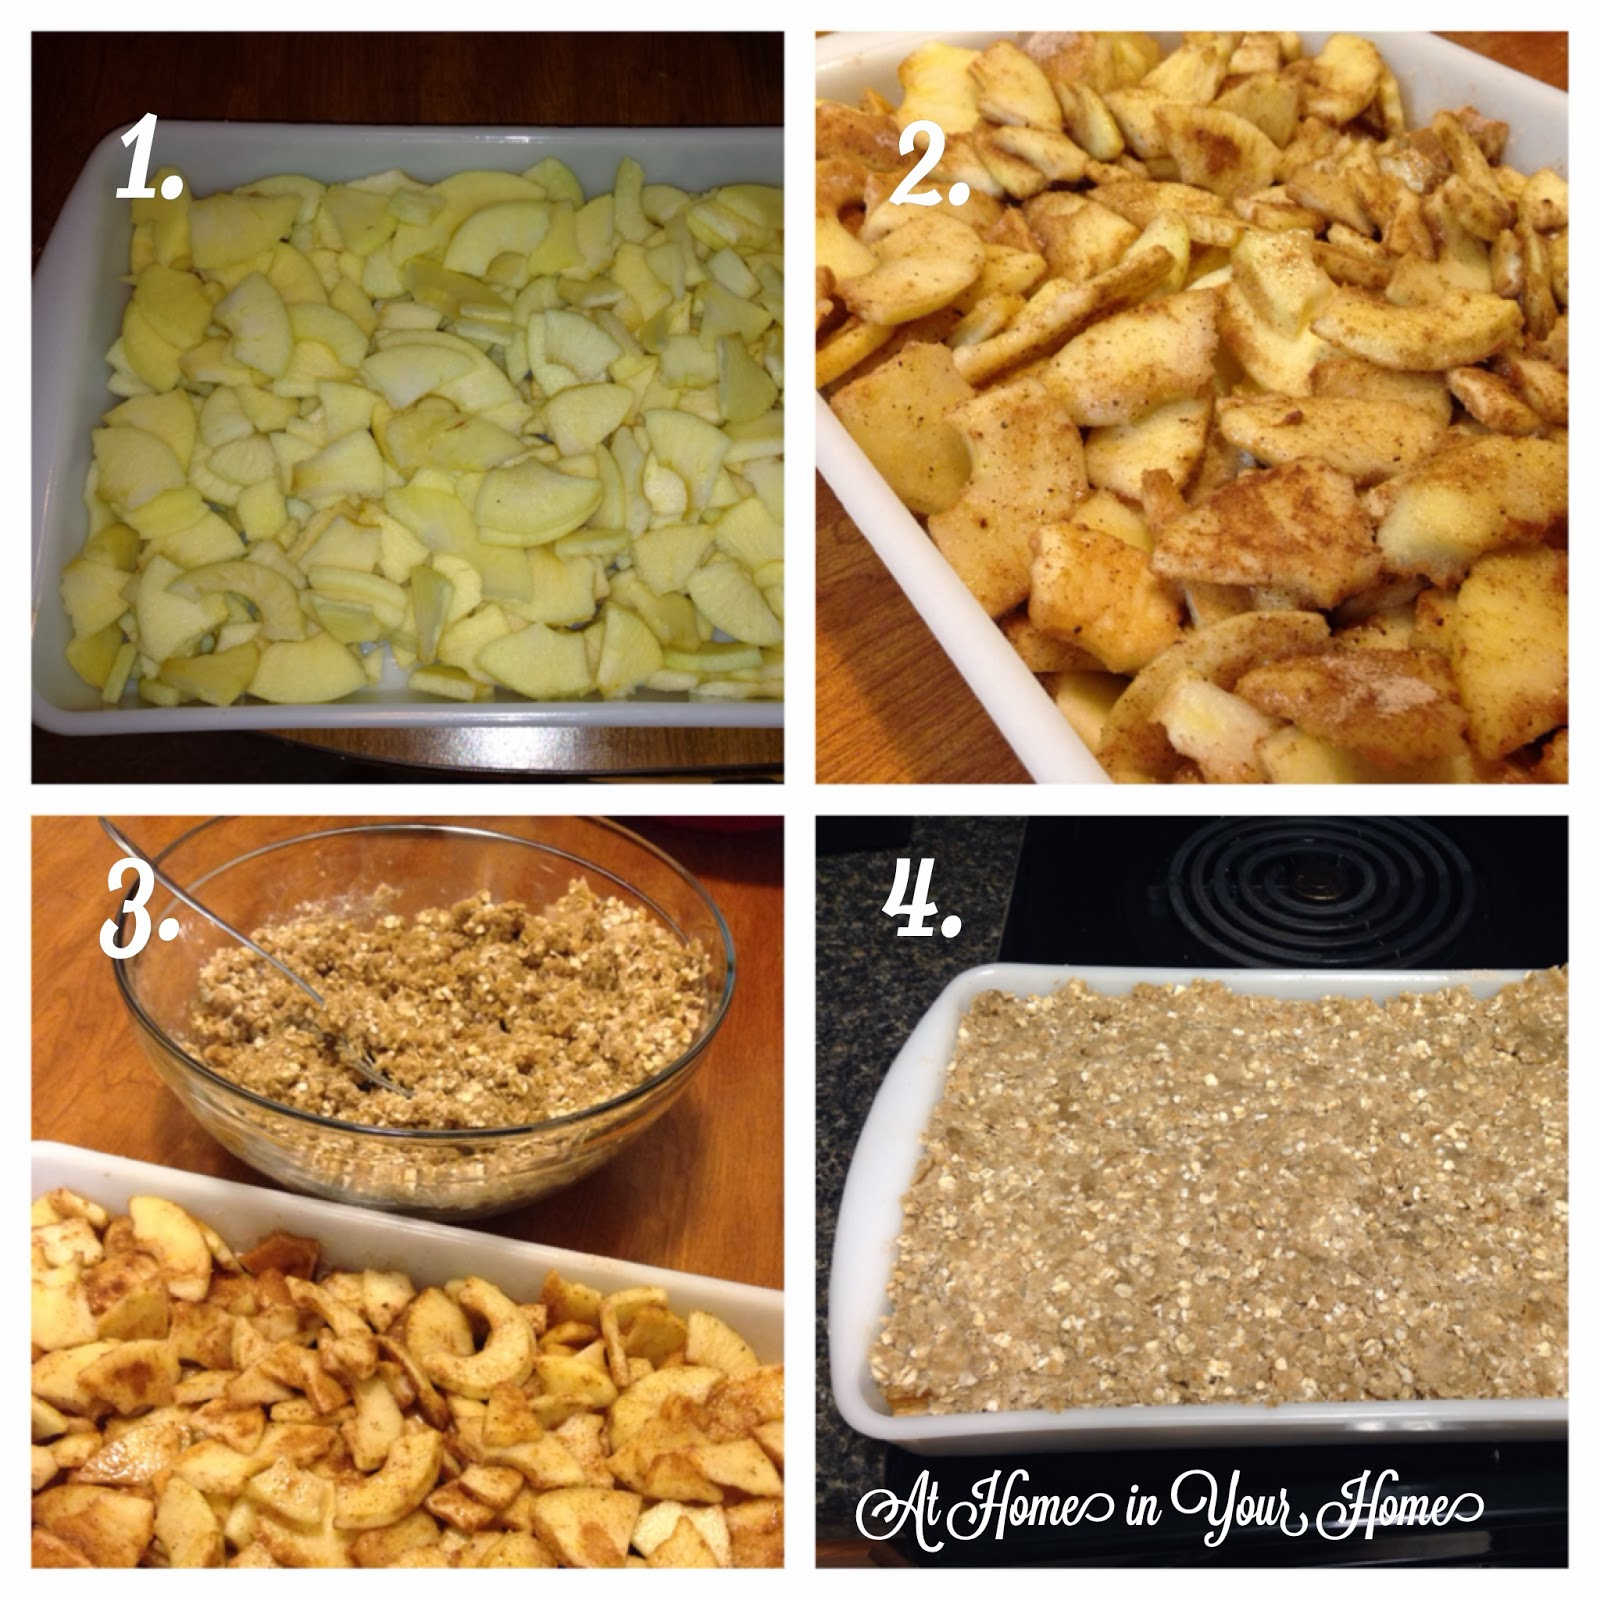 At Home in Your Home: Apple Crisp